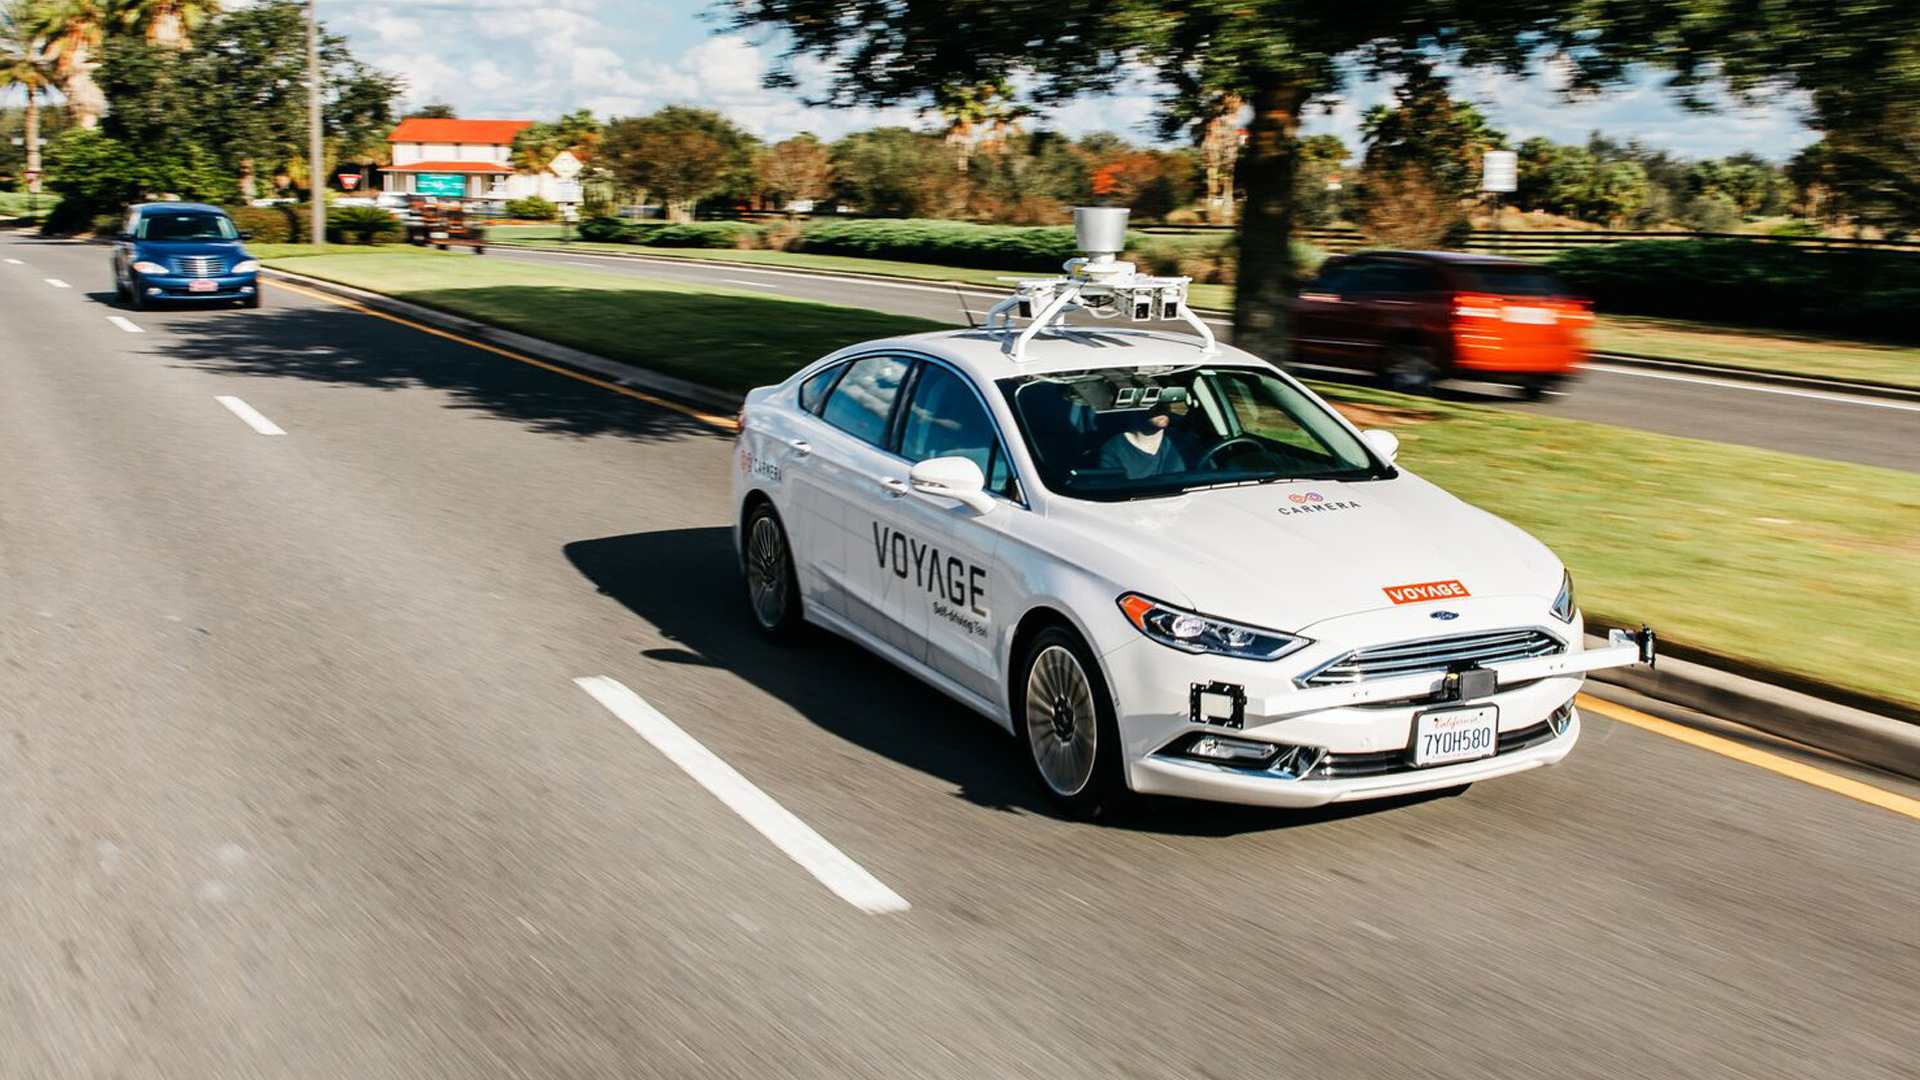 Voyage self-driving car prototype